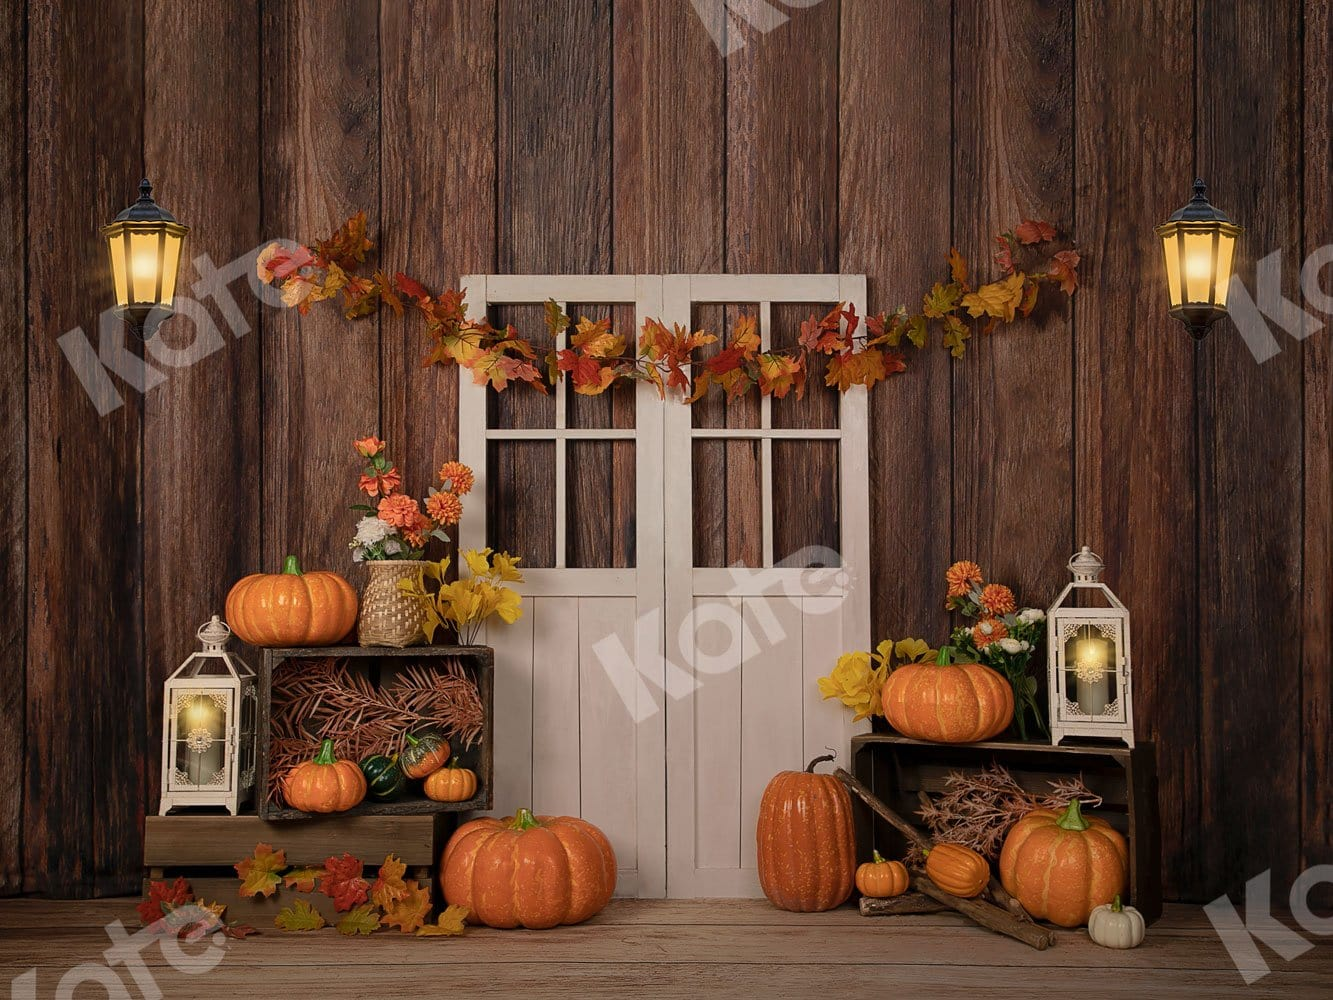 Load image into Gallery viewer, Kate Autumn/Thanksgiving Pumpkins with Lights Backdrop Designed by Jia Chan Photography